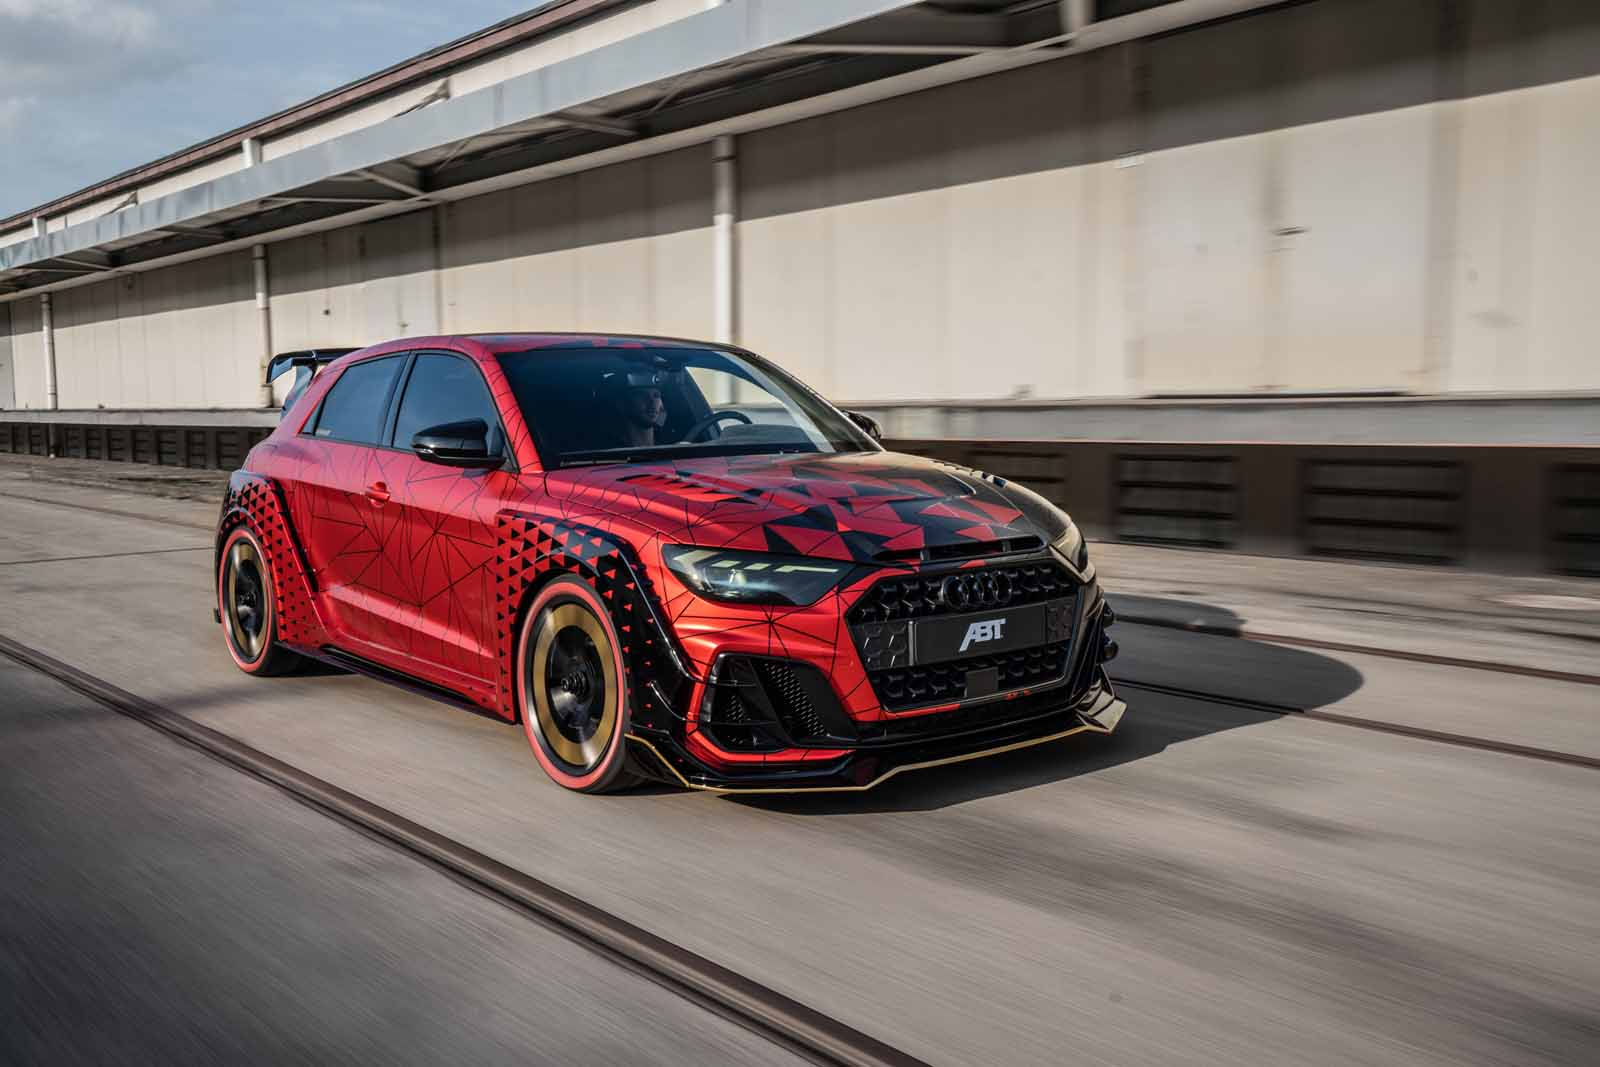 ABT_A1_1of1_front_red_dynamic